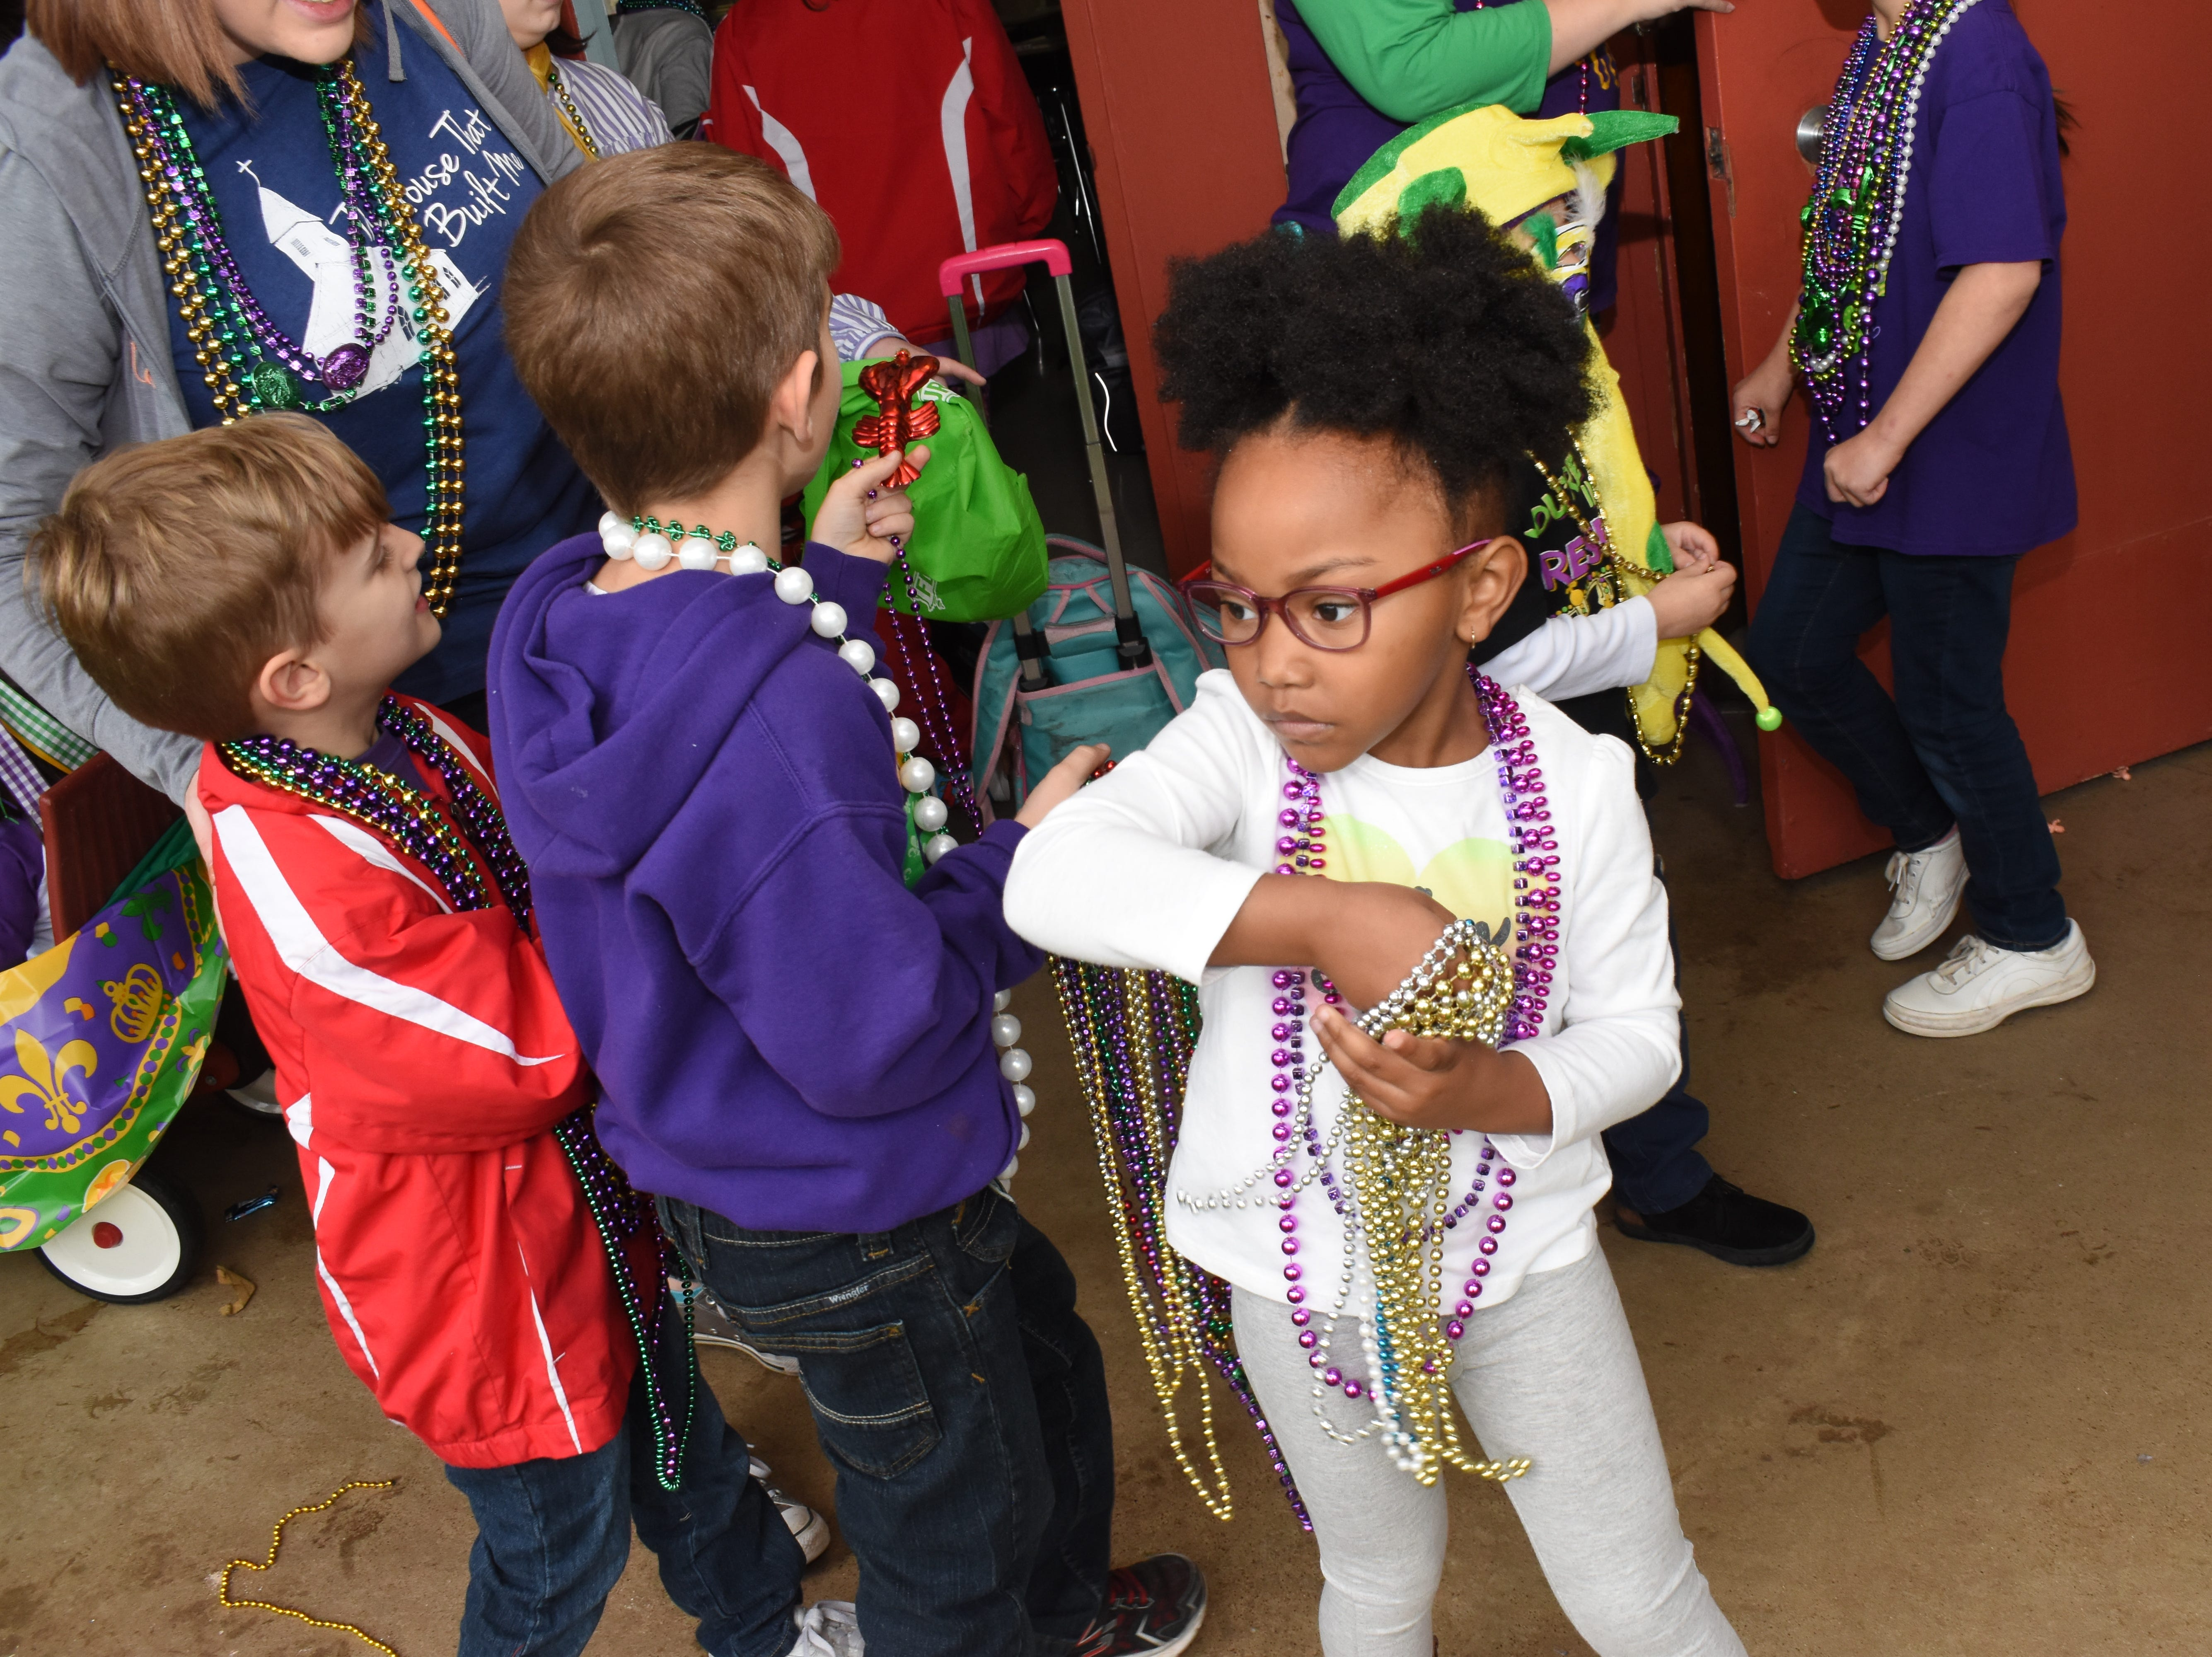 St. Frances Cabrini School crowned Taylor Noel as the Penny Queen and Bray Fee and the Penny Queen Friday, March 1, 2019. The crowning was followed by the pre-Kindergarten and Kindergarten Mardi Gras parade which proceeded throw the school.